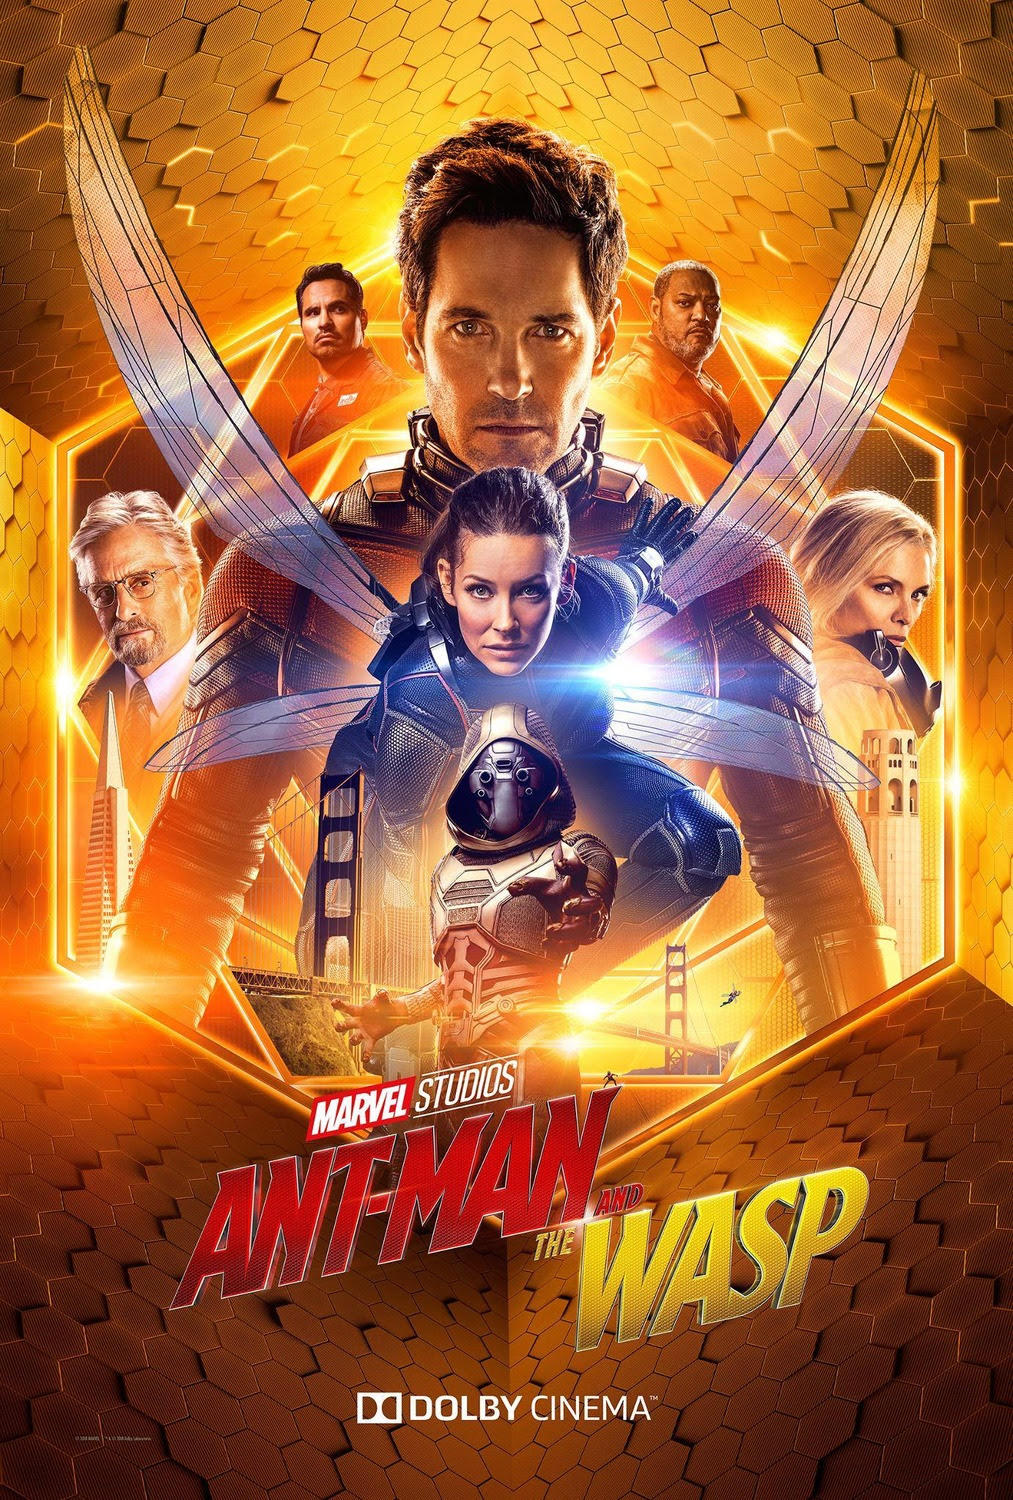 Extra Large Movie Poster Image for Ant-Man and the Wasp (#12 of 18)